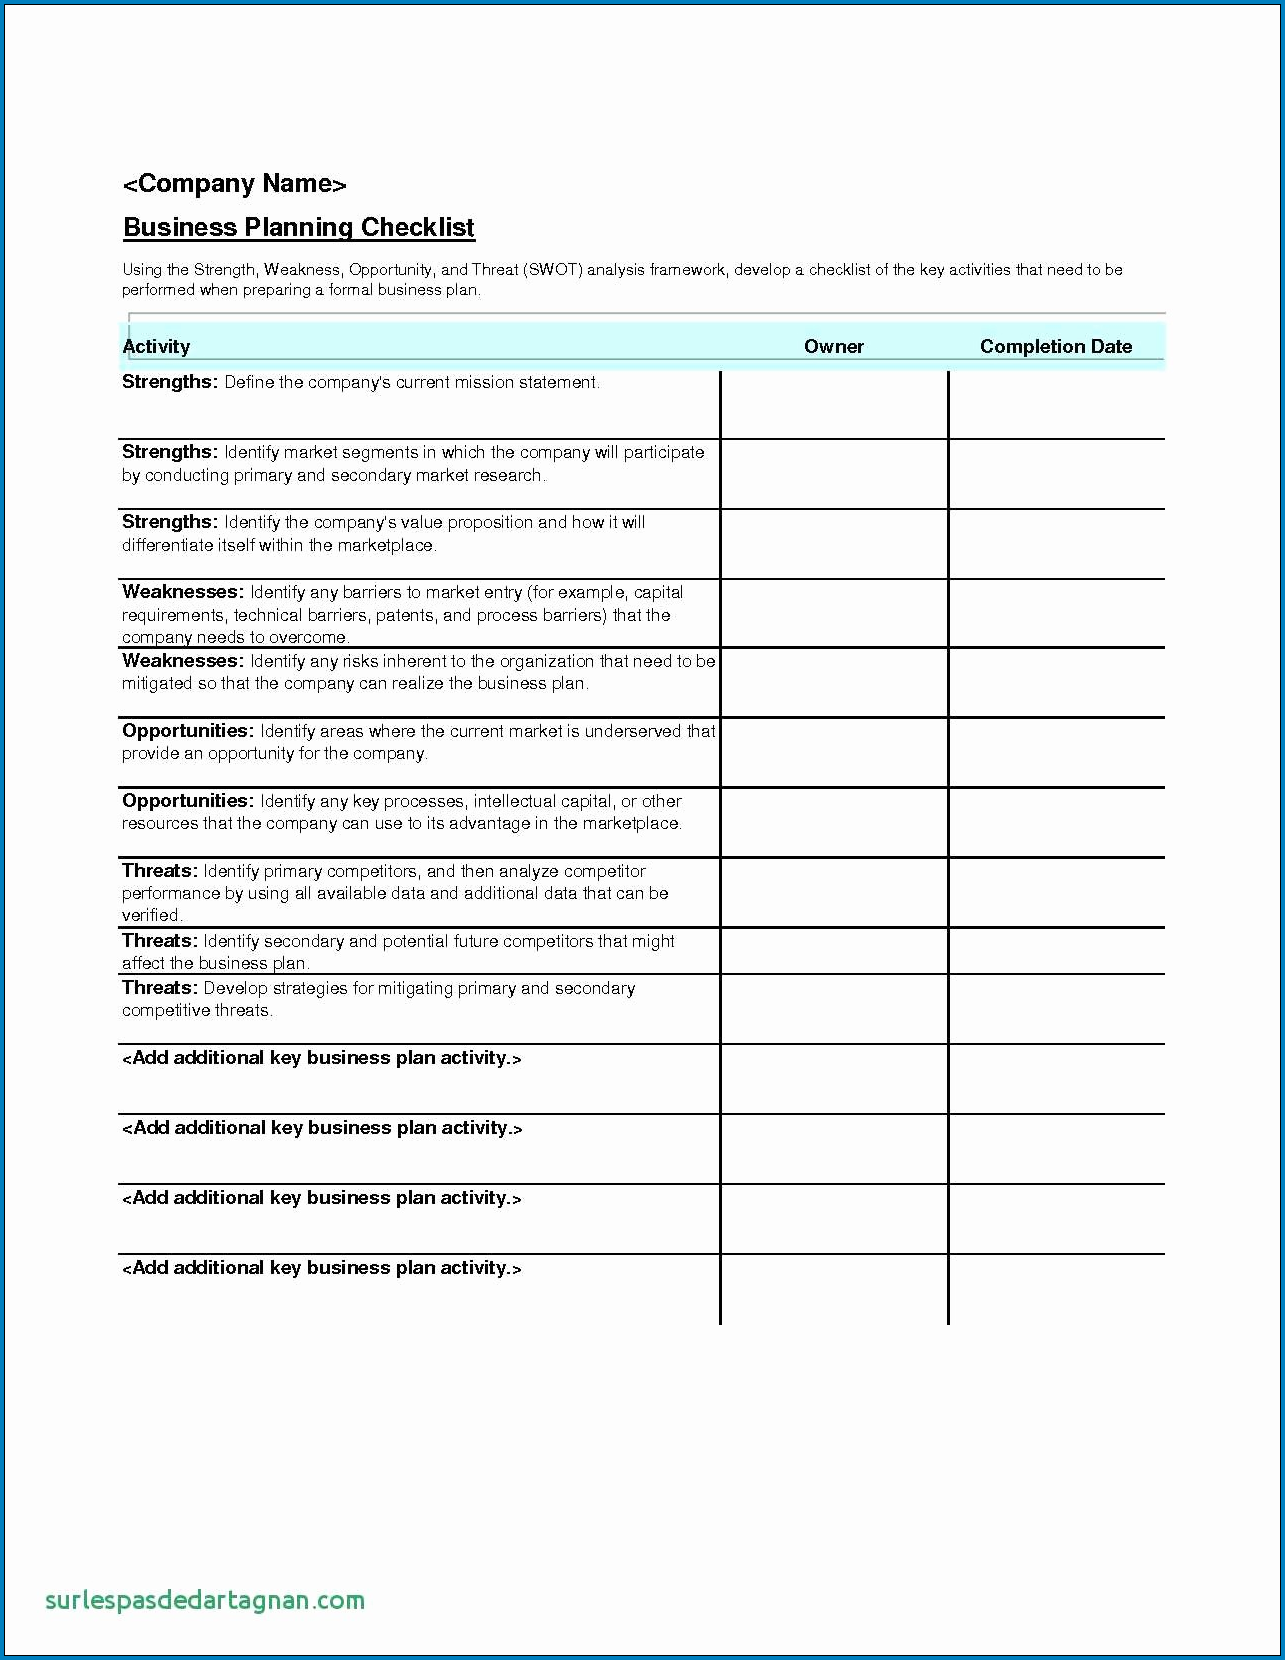 Corporate Event Planning Checklist Template Example